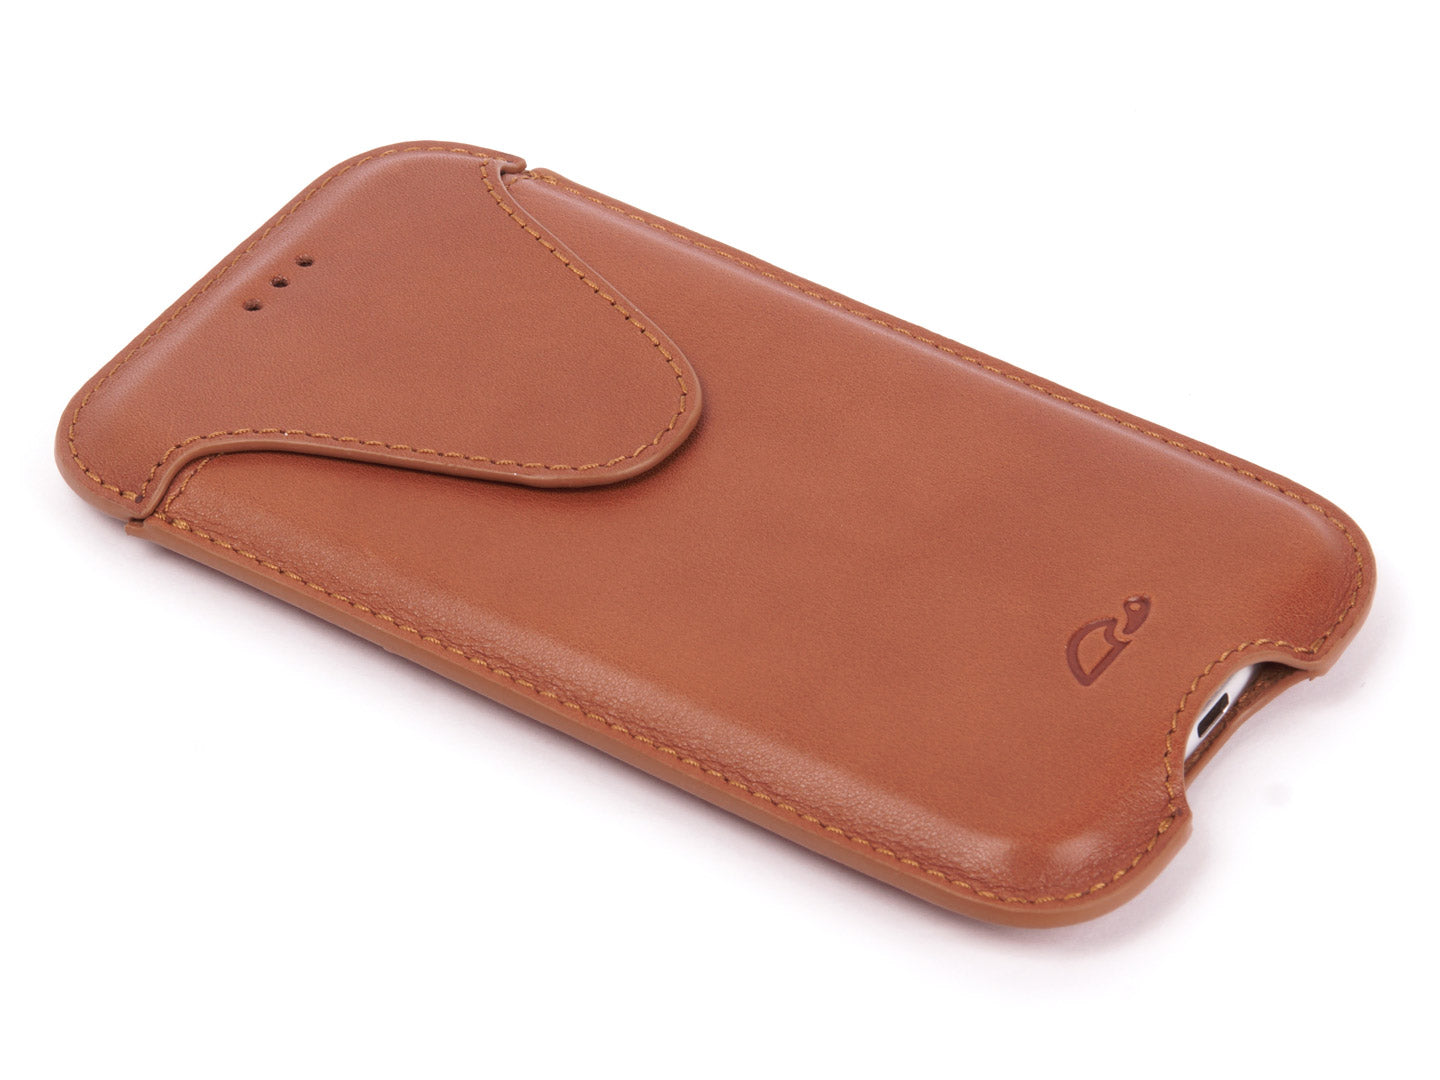 hot sale online 21cb8 fe4df LEATHER POUCH FOR iPHONE X / XS - TAN